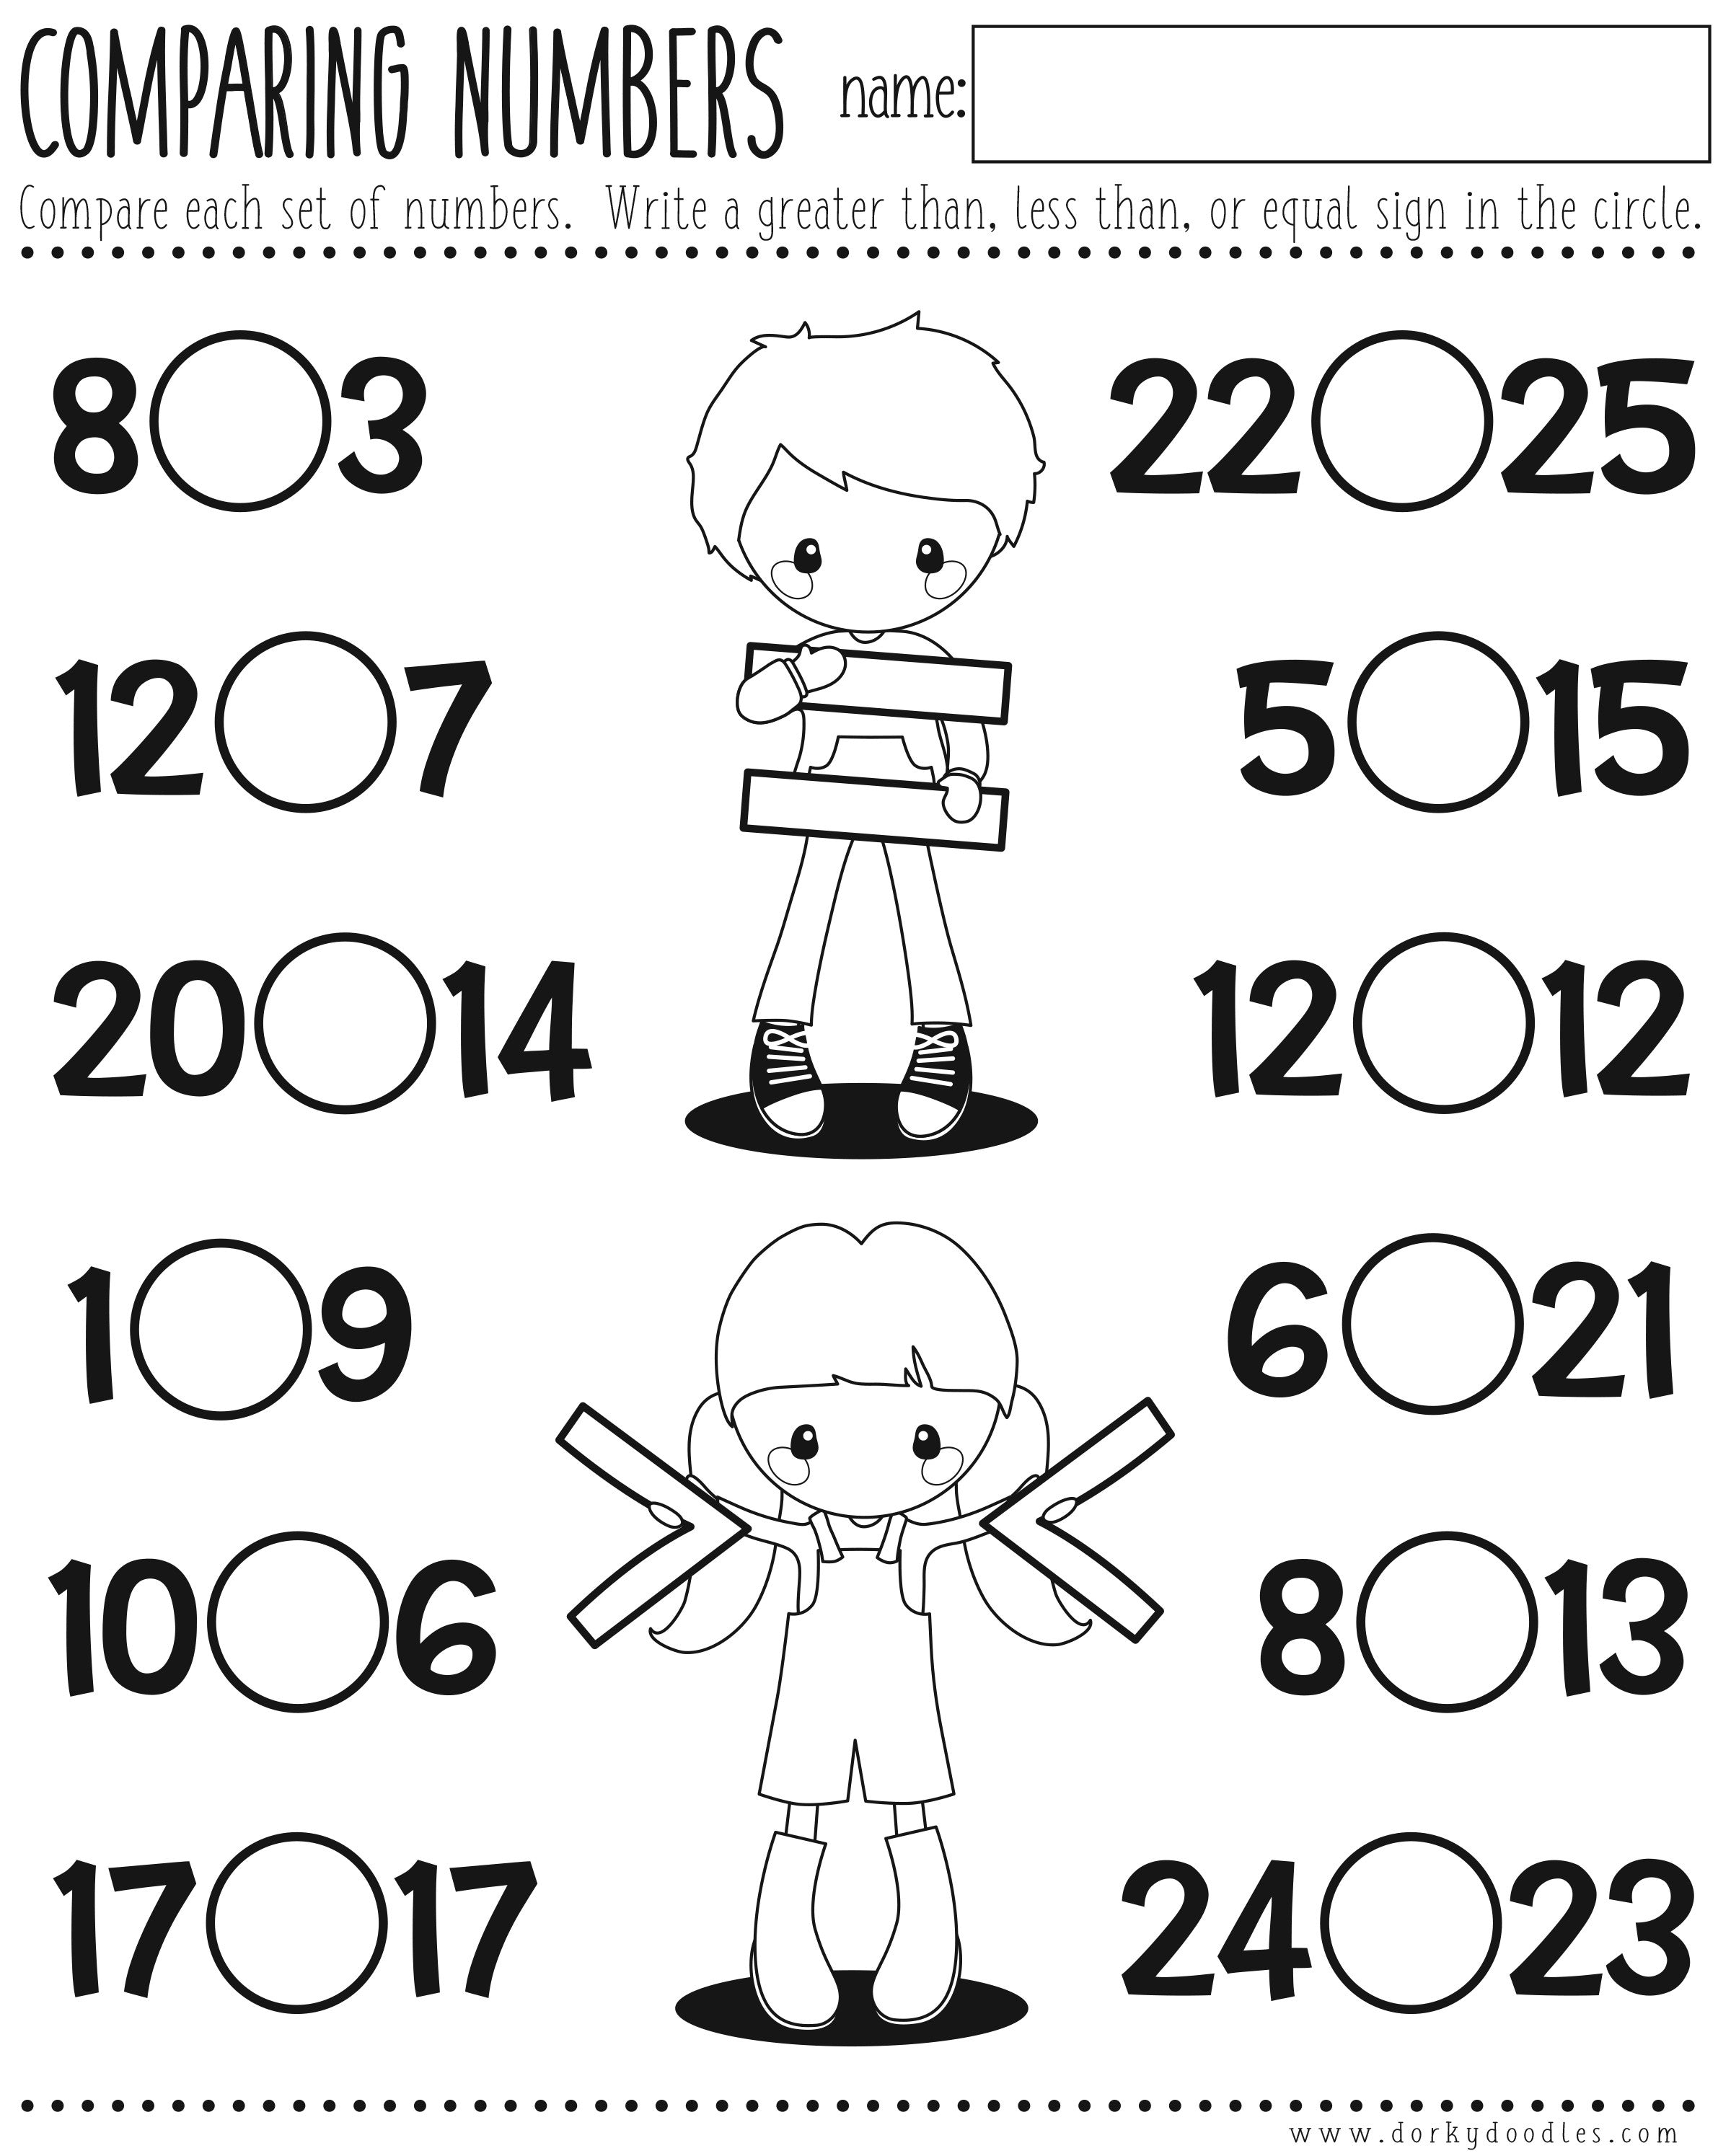 worksheet Greater Than Less Than Equal To Worksheet greater or less than comparing numbers printable dorky doodles worksheet